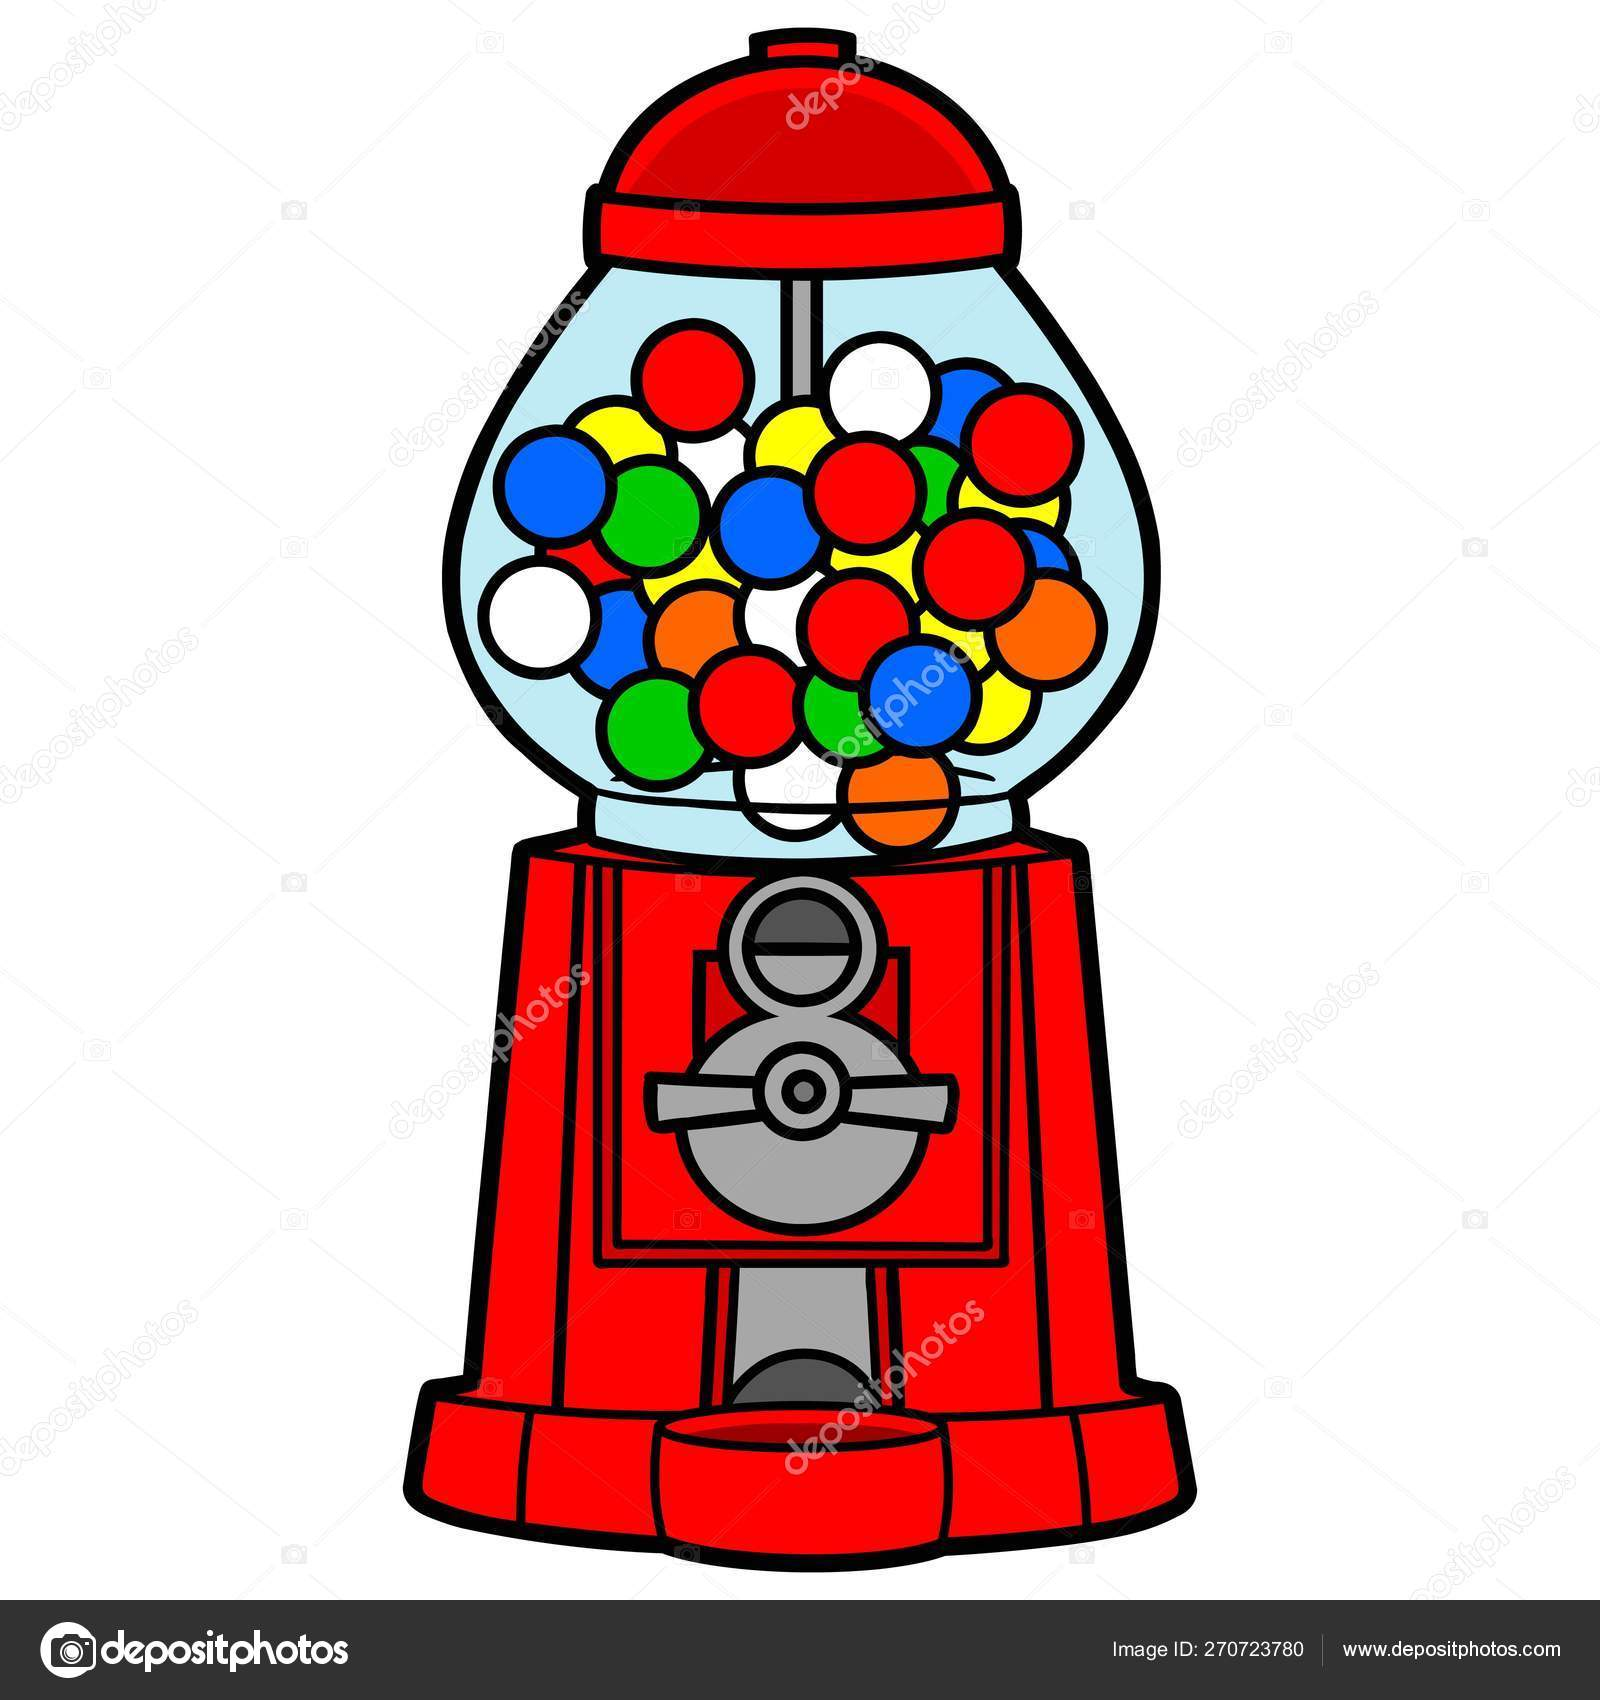 Free Pictures Of Gumball Machines, Download Free Clip Art, Free Clip Art on  Clipart Library